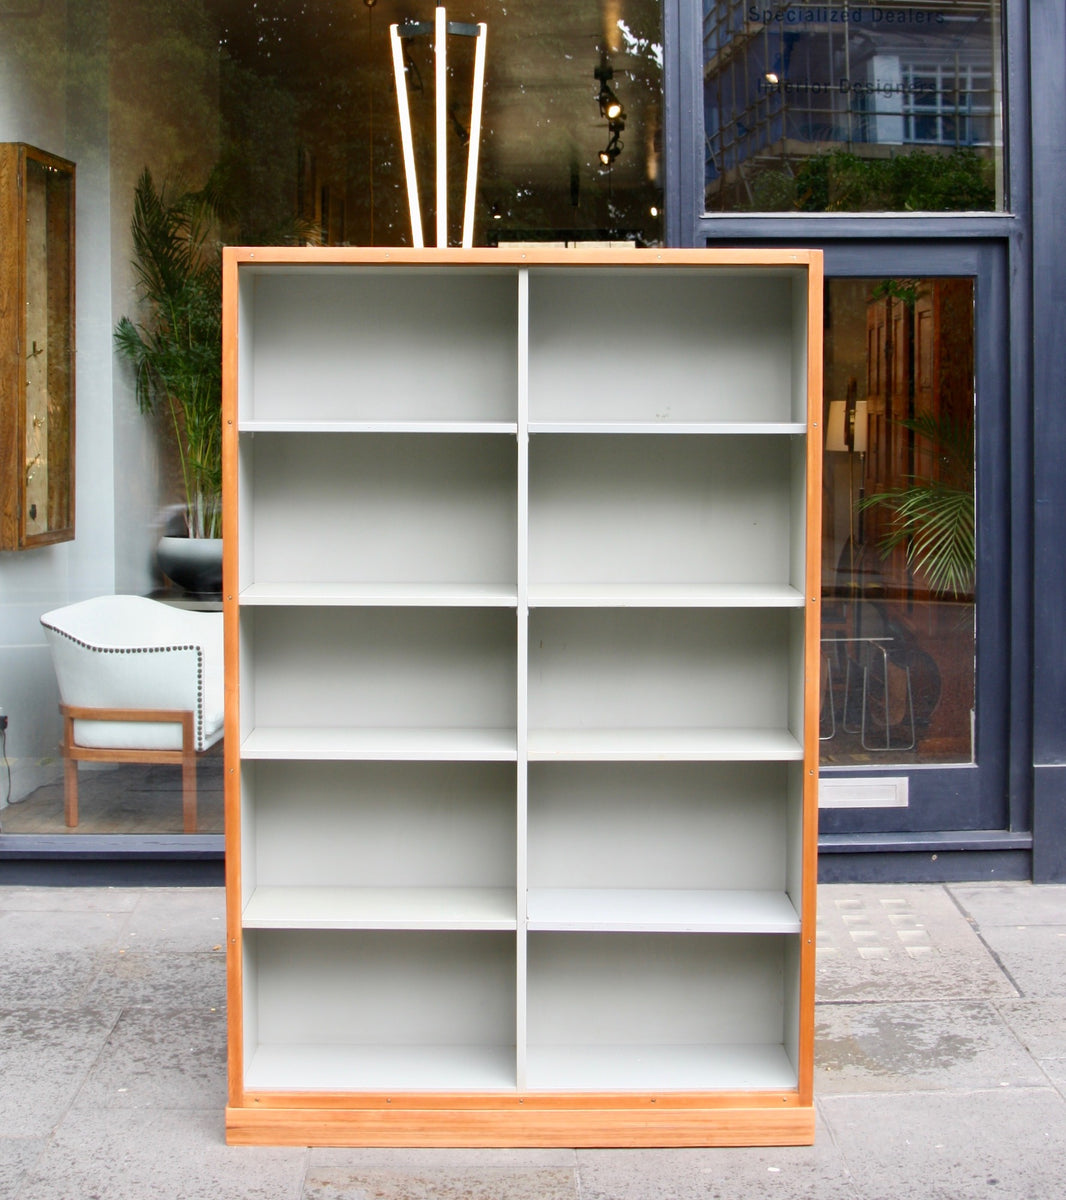 Large Bookcase  Børge Mogensen and Grete Meyer - Quality Danish Modern Beautiful Handmade Danish Design Architect Designed Simple Built for the future Storage  Front of shop image